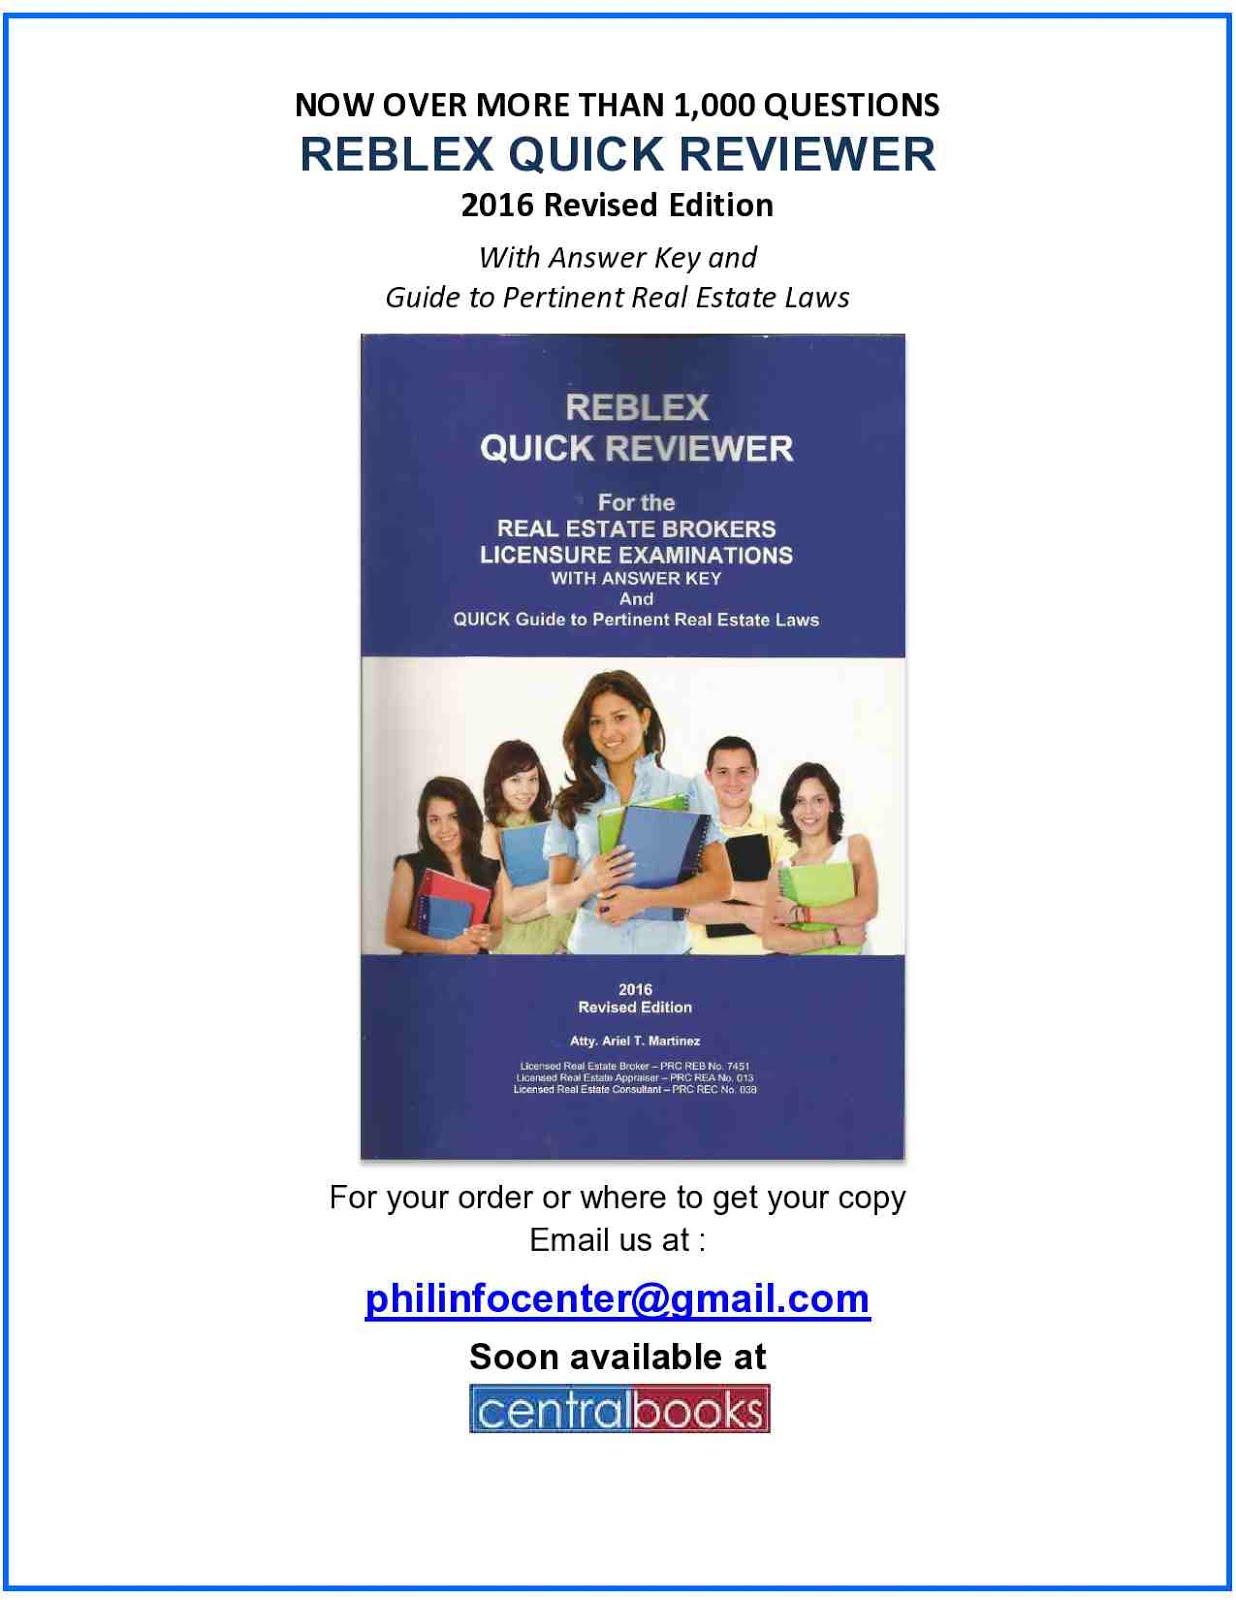 Be Ahead for the 2016 Real Estate Brokers Licensure Examinations